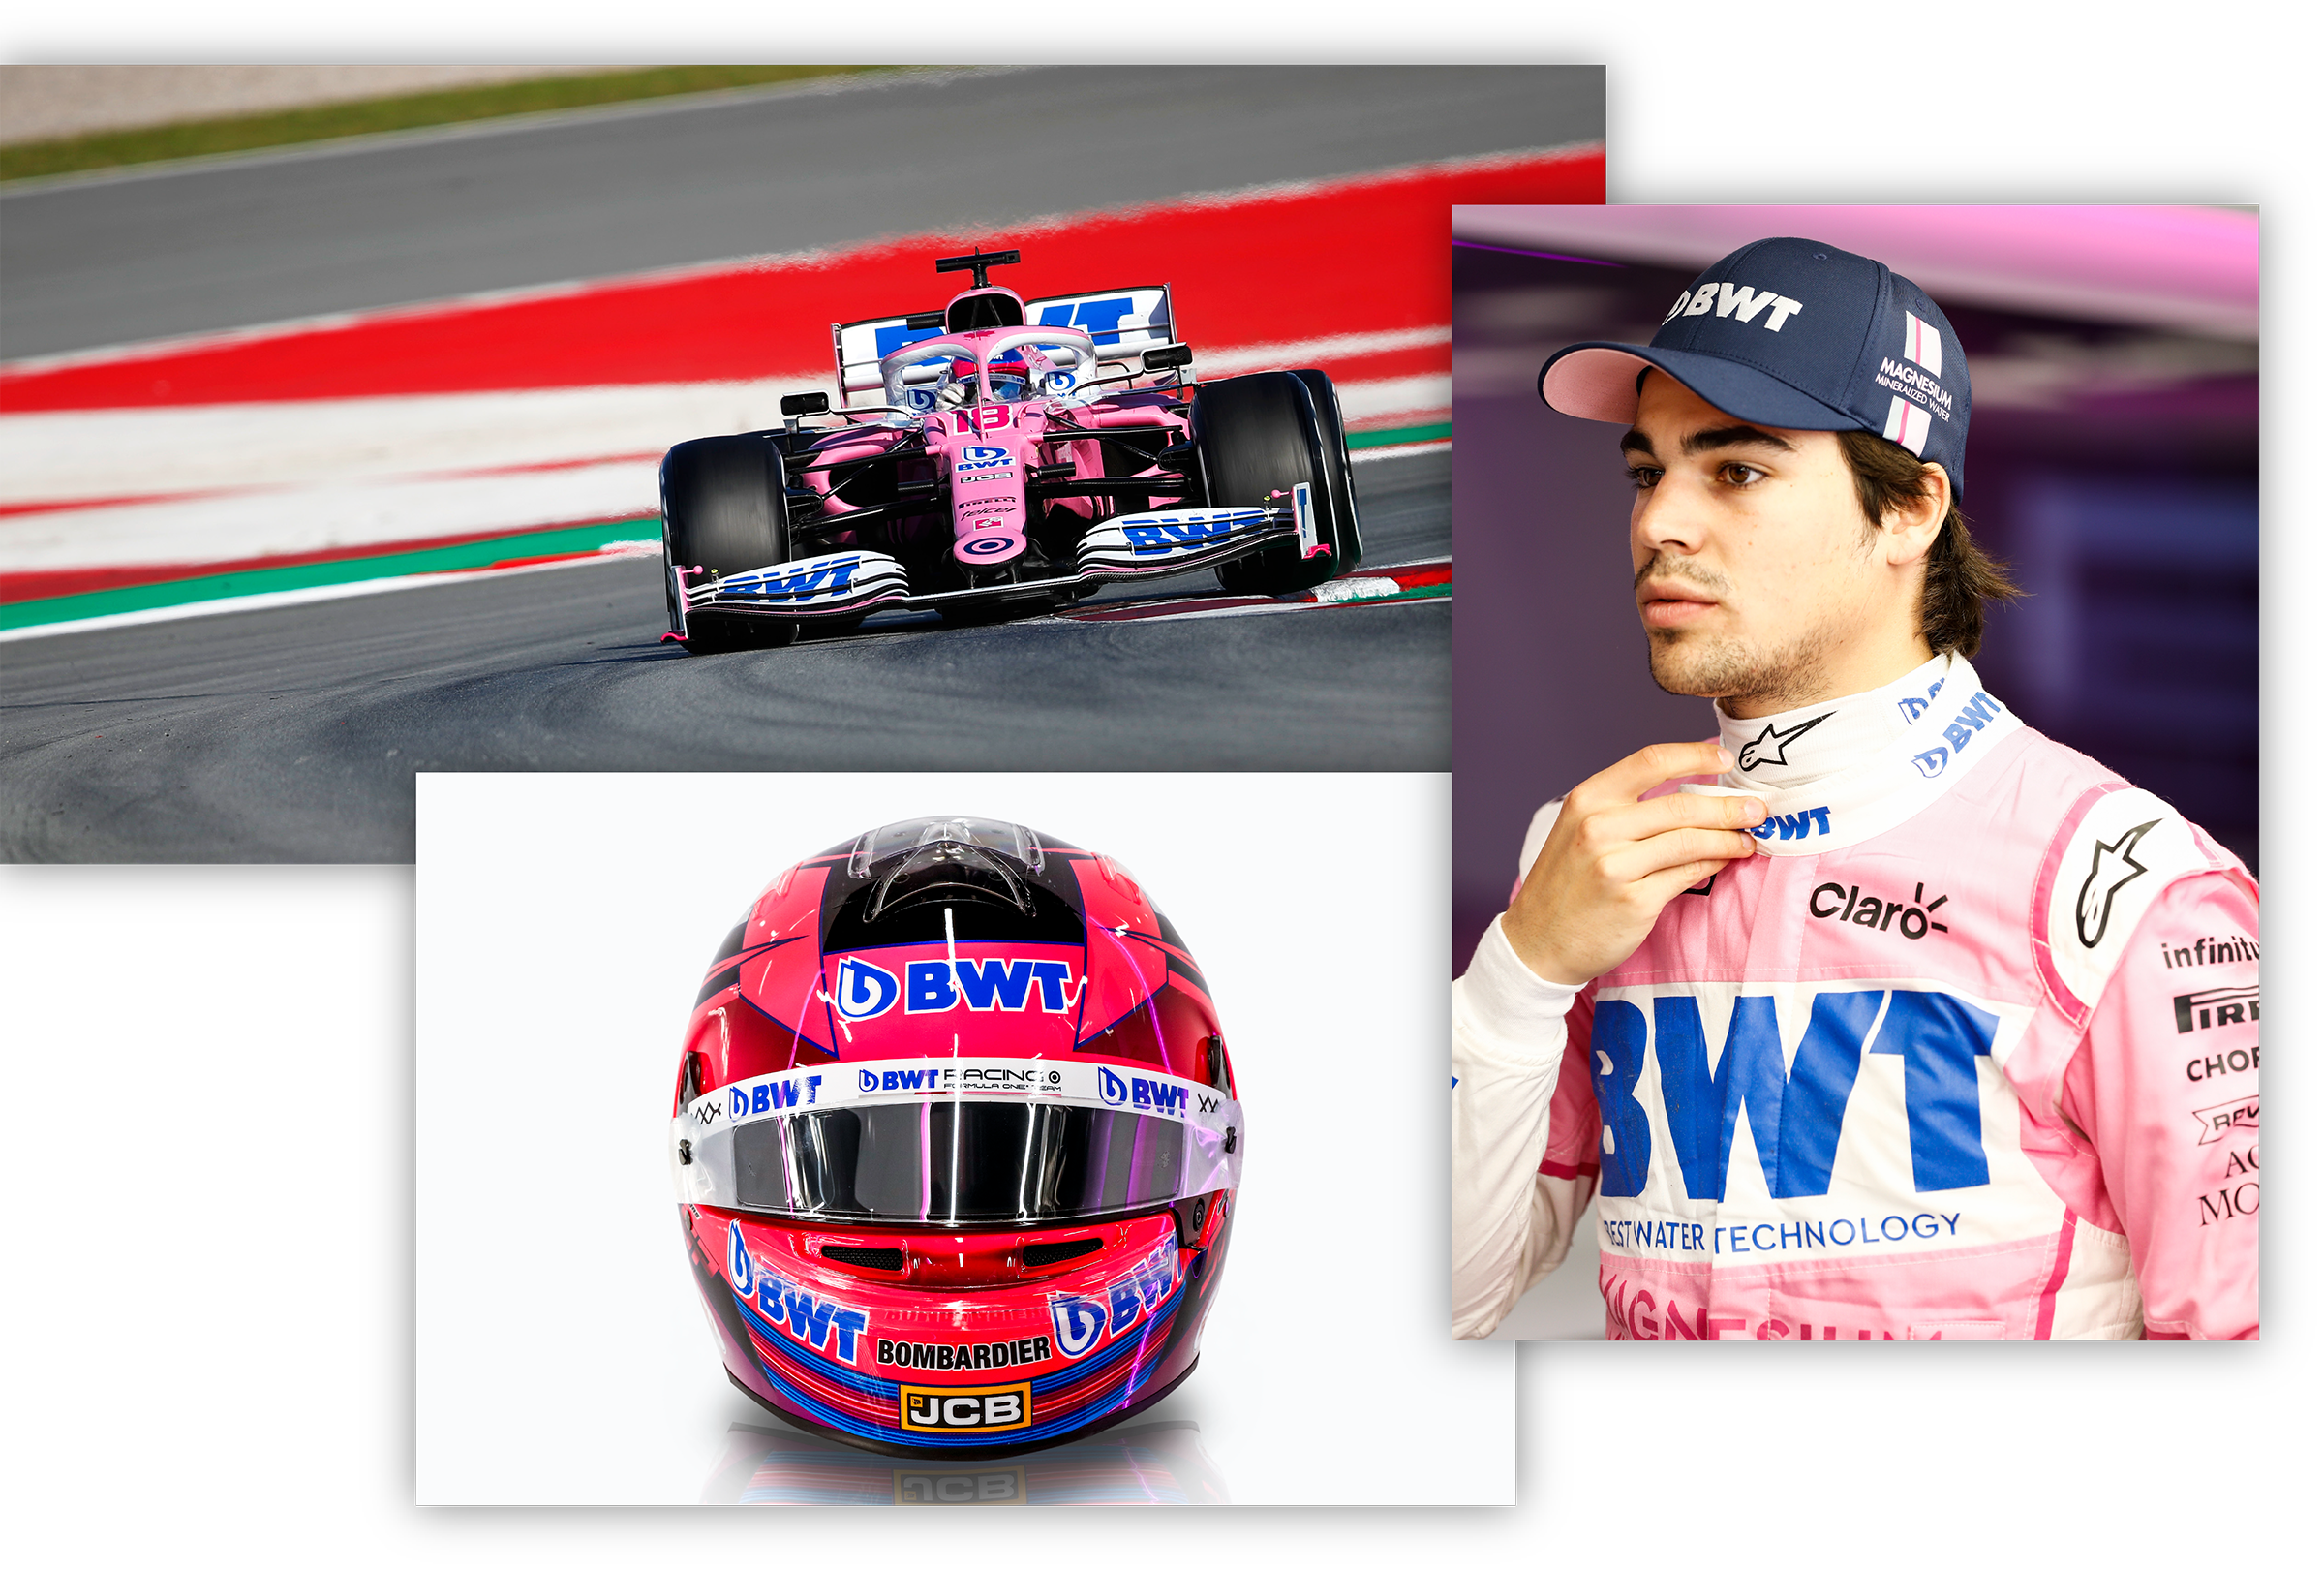 formula one driver and car with BWT logo